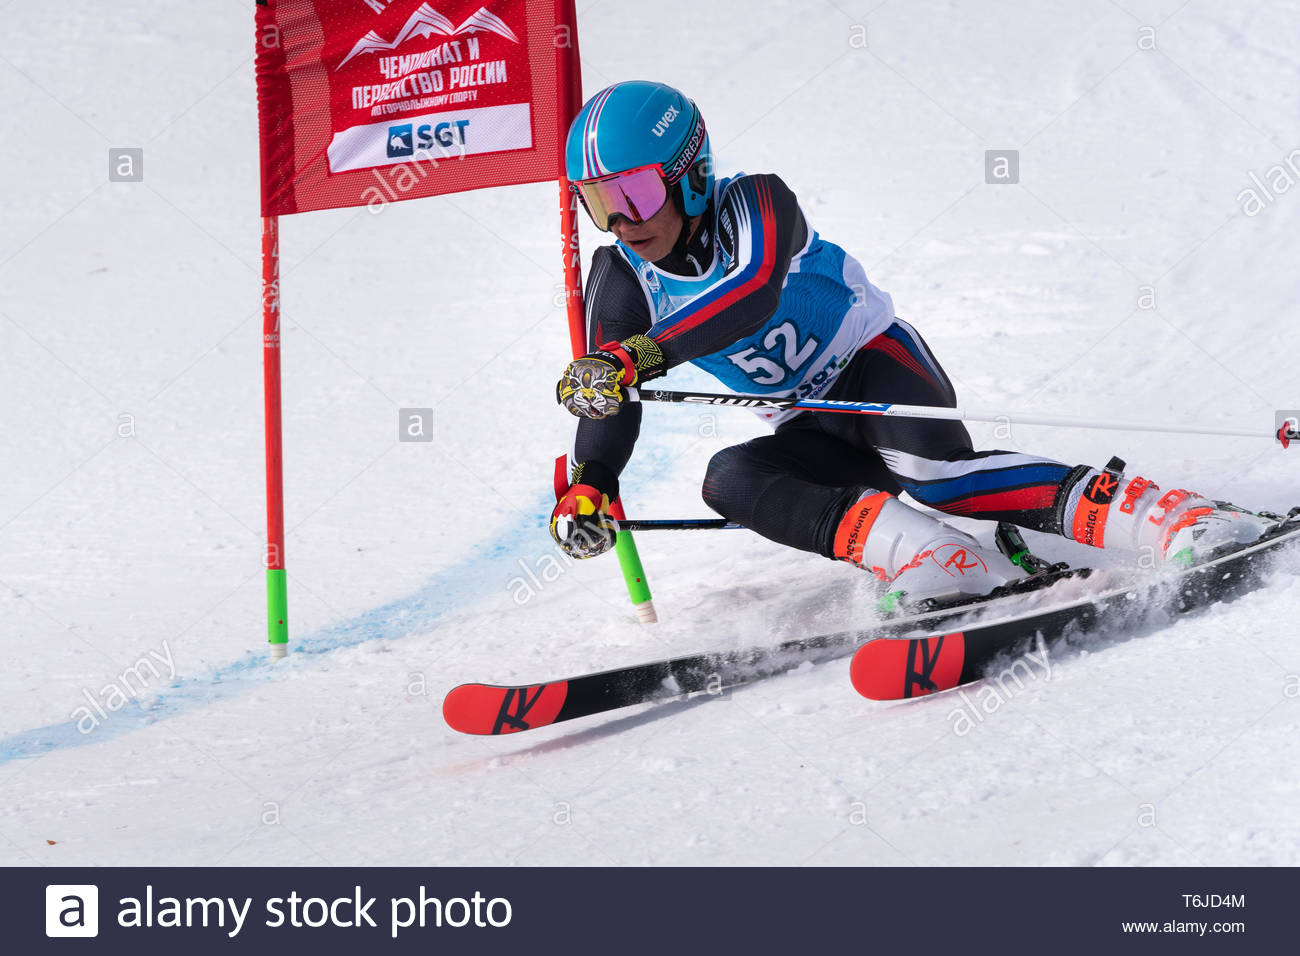 KAMCHATKA, RUSSIA - APR 1, 2019: Mountain skier Maxim Sitchikhin (Kamchatka Peninsula) skiing down mount slope. Russian Alpine Skiing Cup, Internation - Stock Image